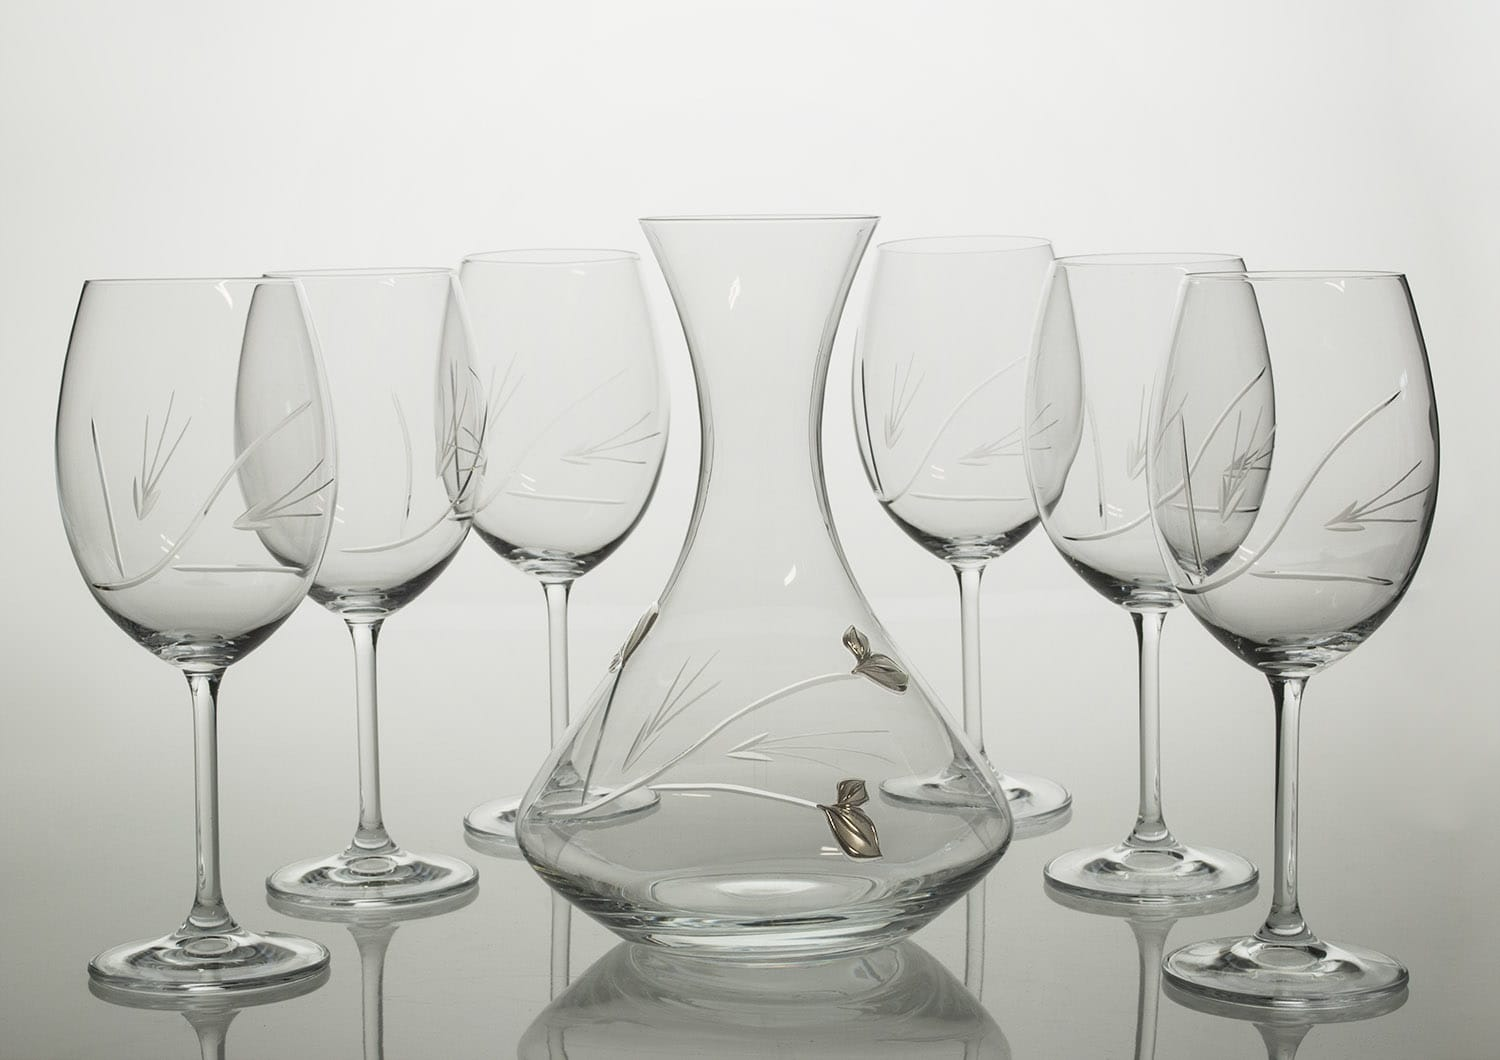 Gastro wine set. 6 glasses and decanter 31A09 (oetals engraving)